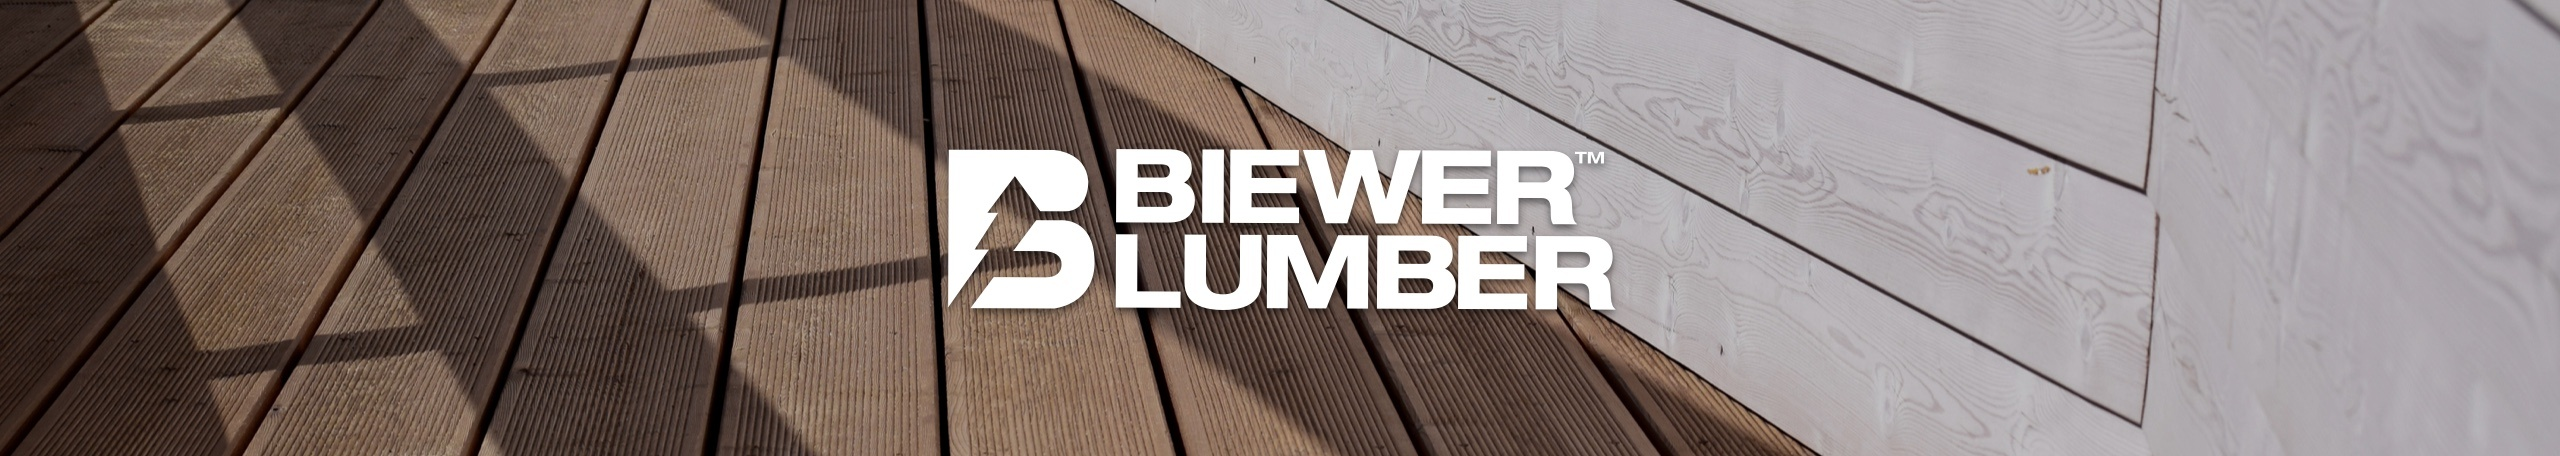 Biewer Lumber logo with lumber deck